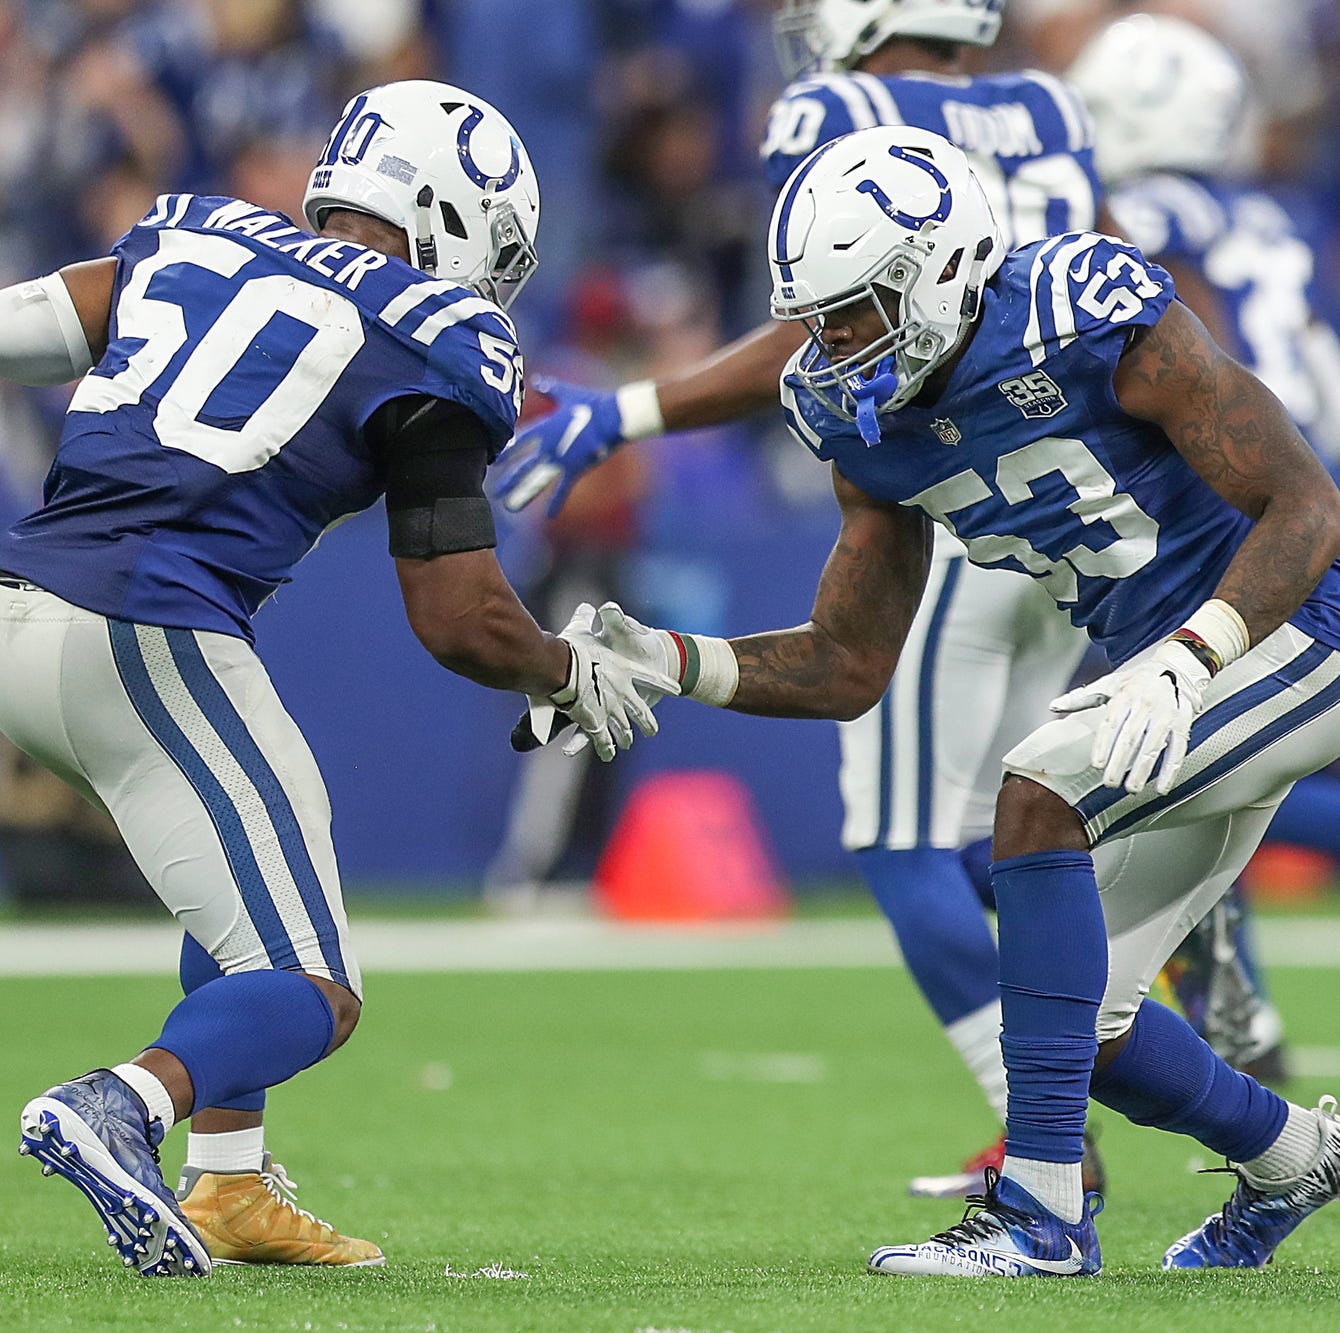 Draft preview: Darius Leonard, Anthony Walker give Colts promising tandem at linebacker